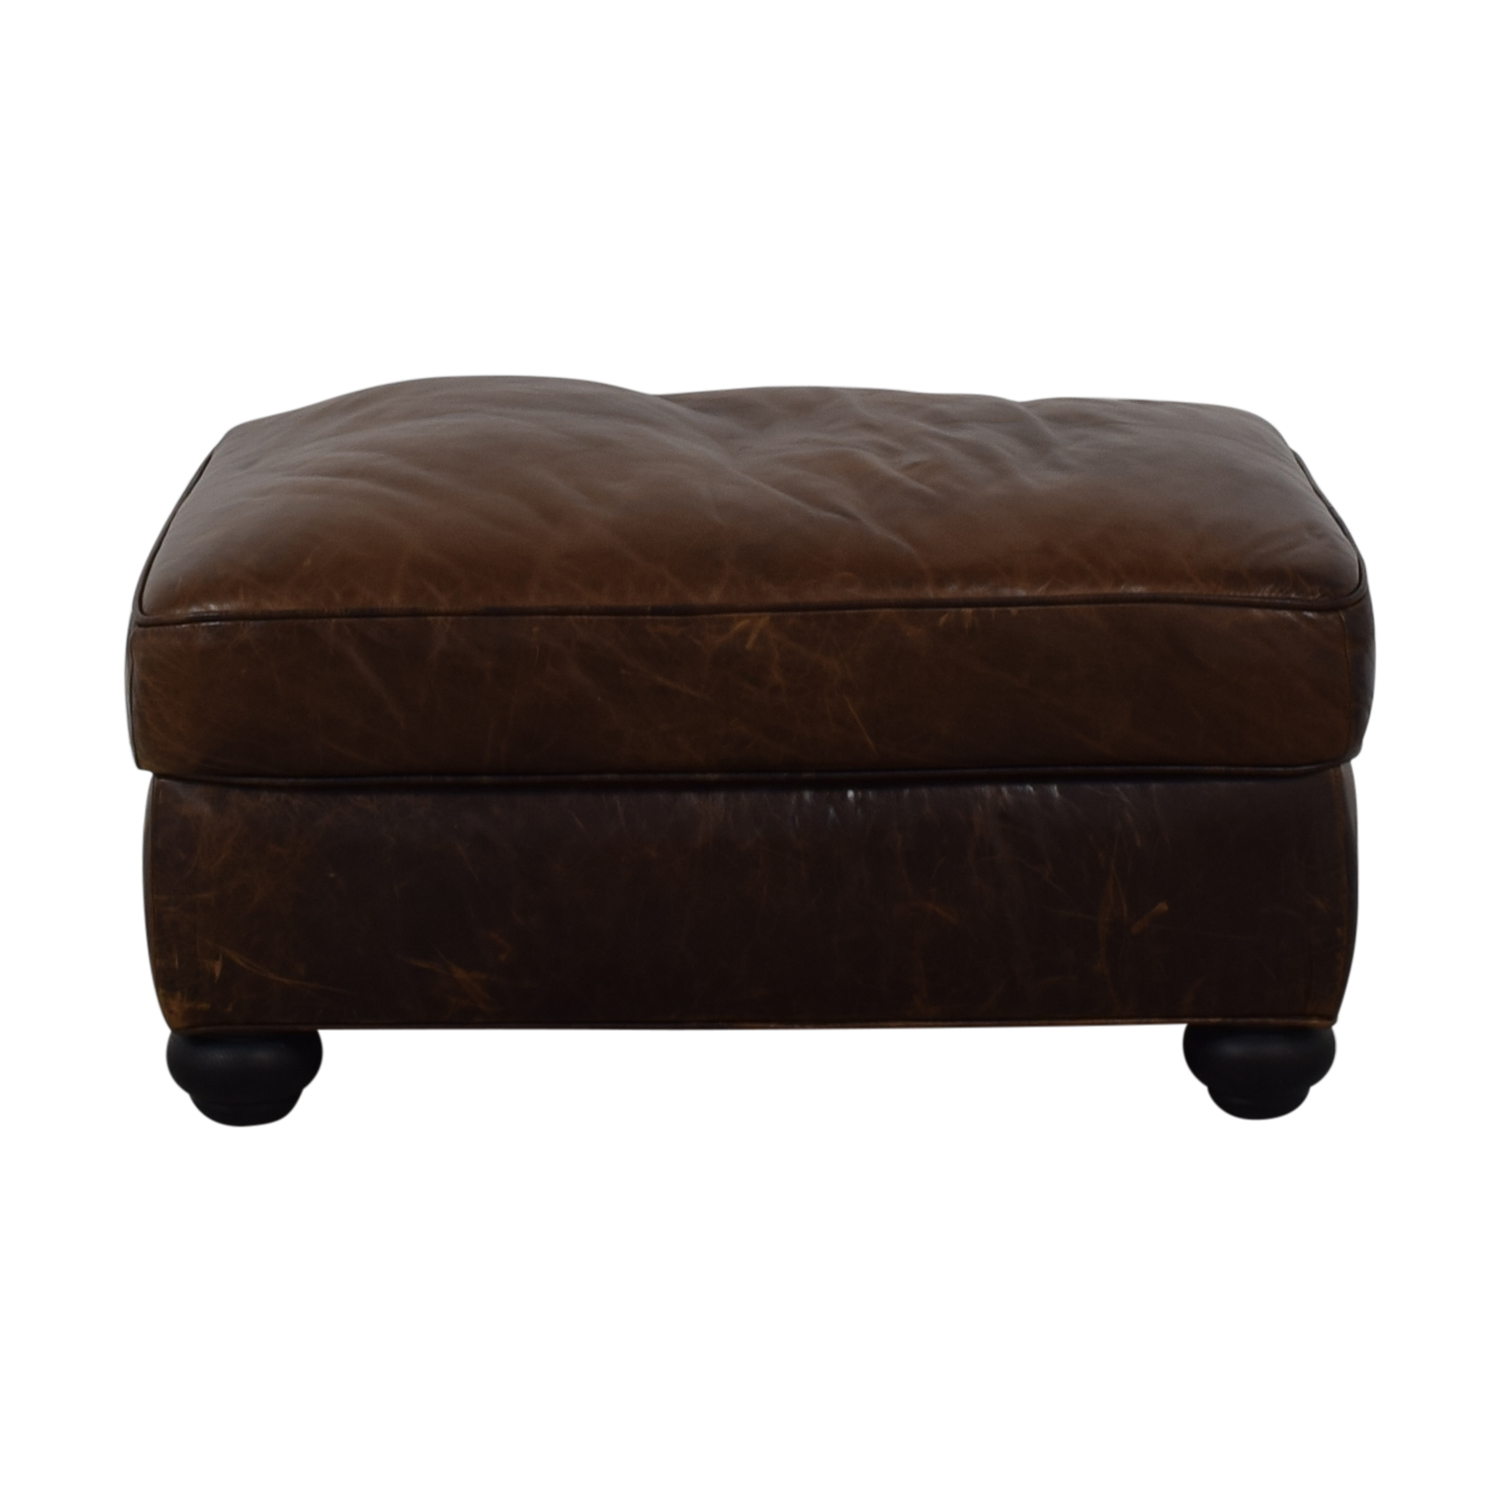 Restoration Hardware Restoration Hardware Lancaster Leather Ottoman brown